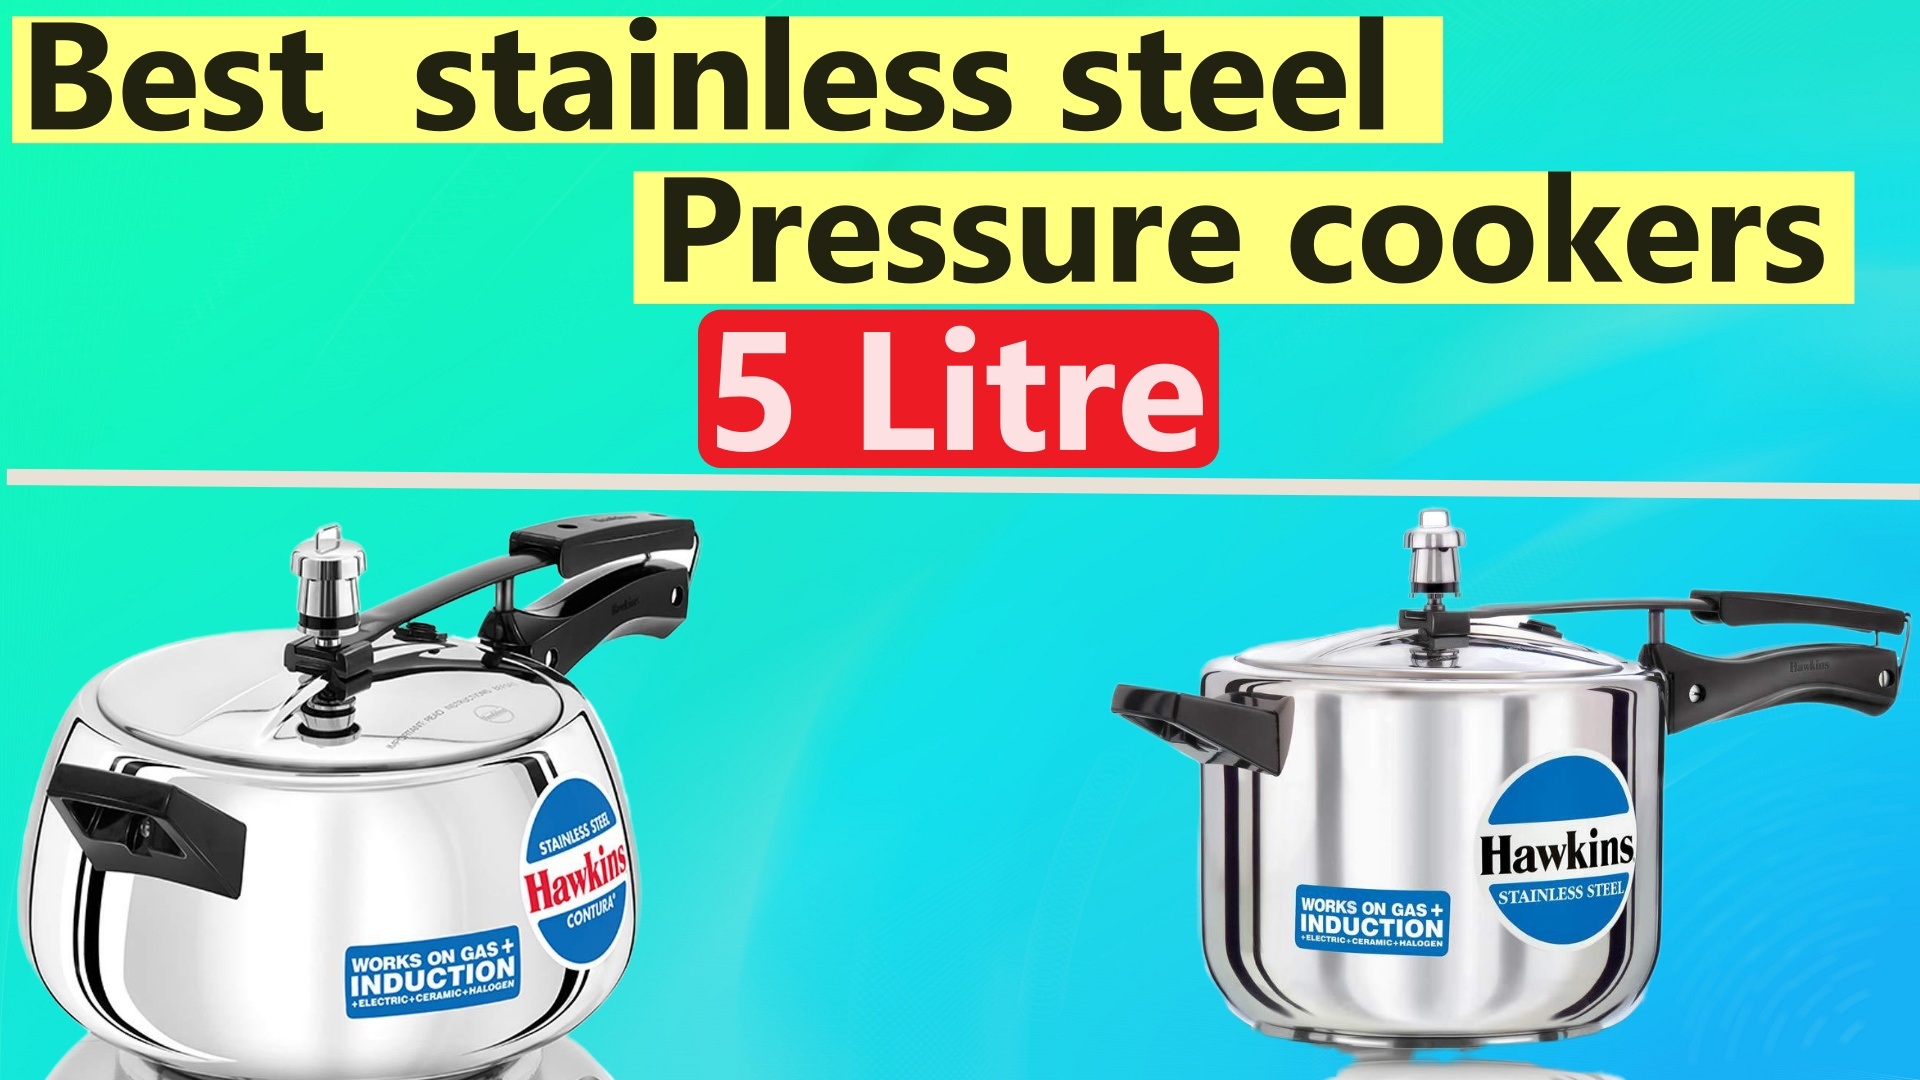 Best 5 litre stainless steel Pressure cookers